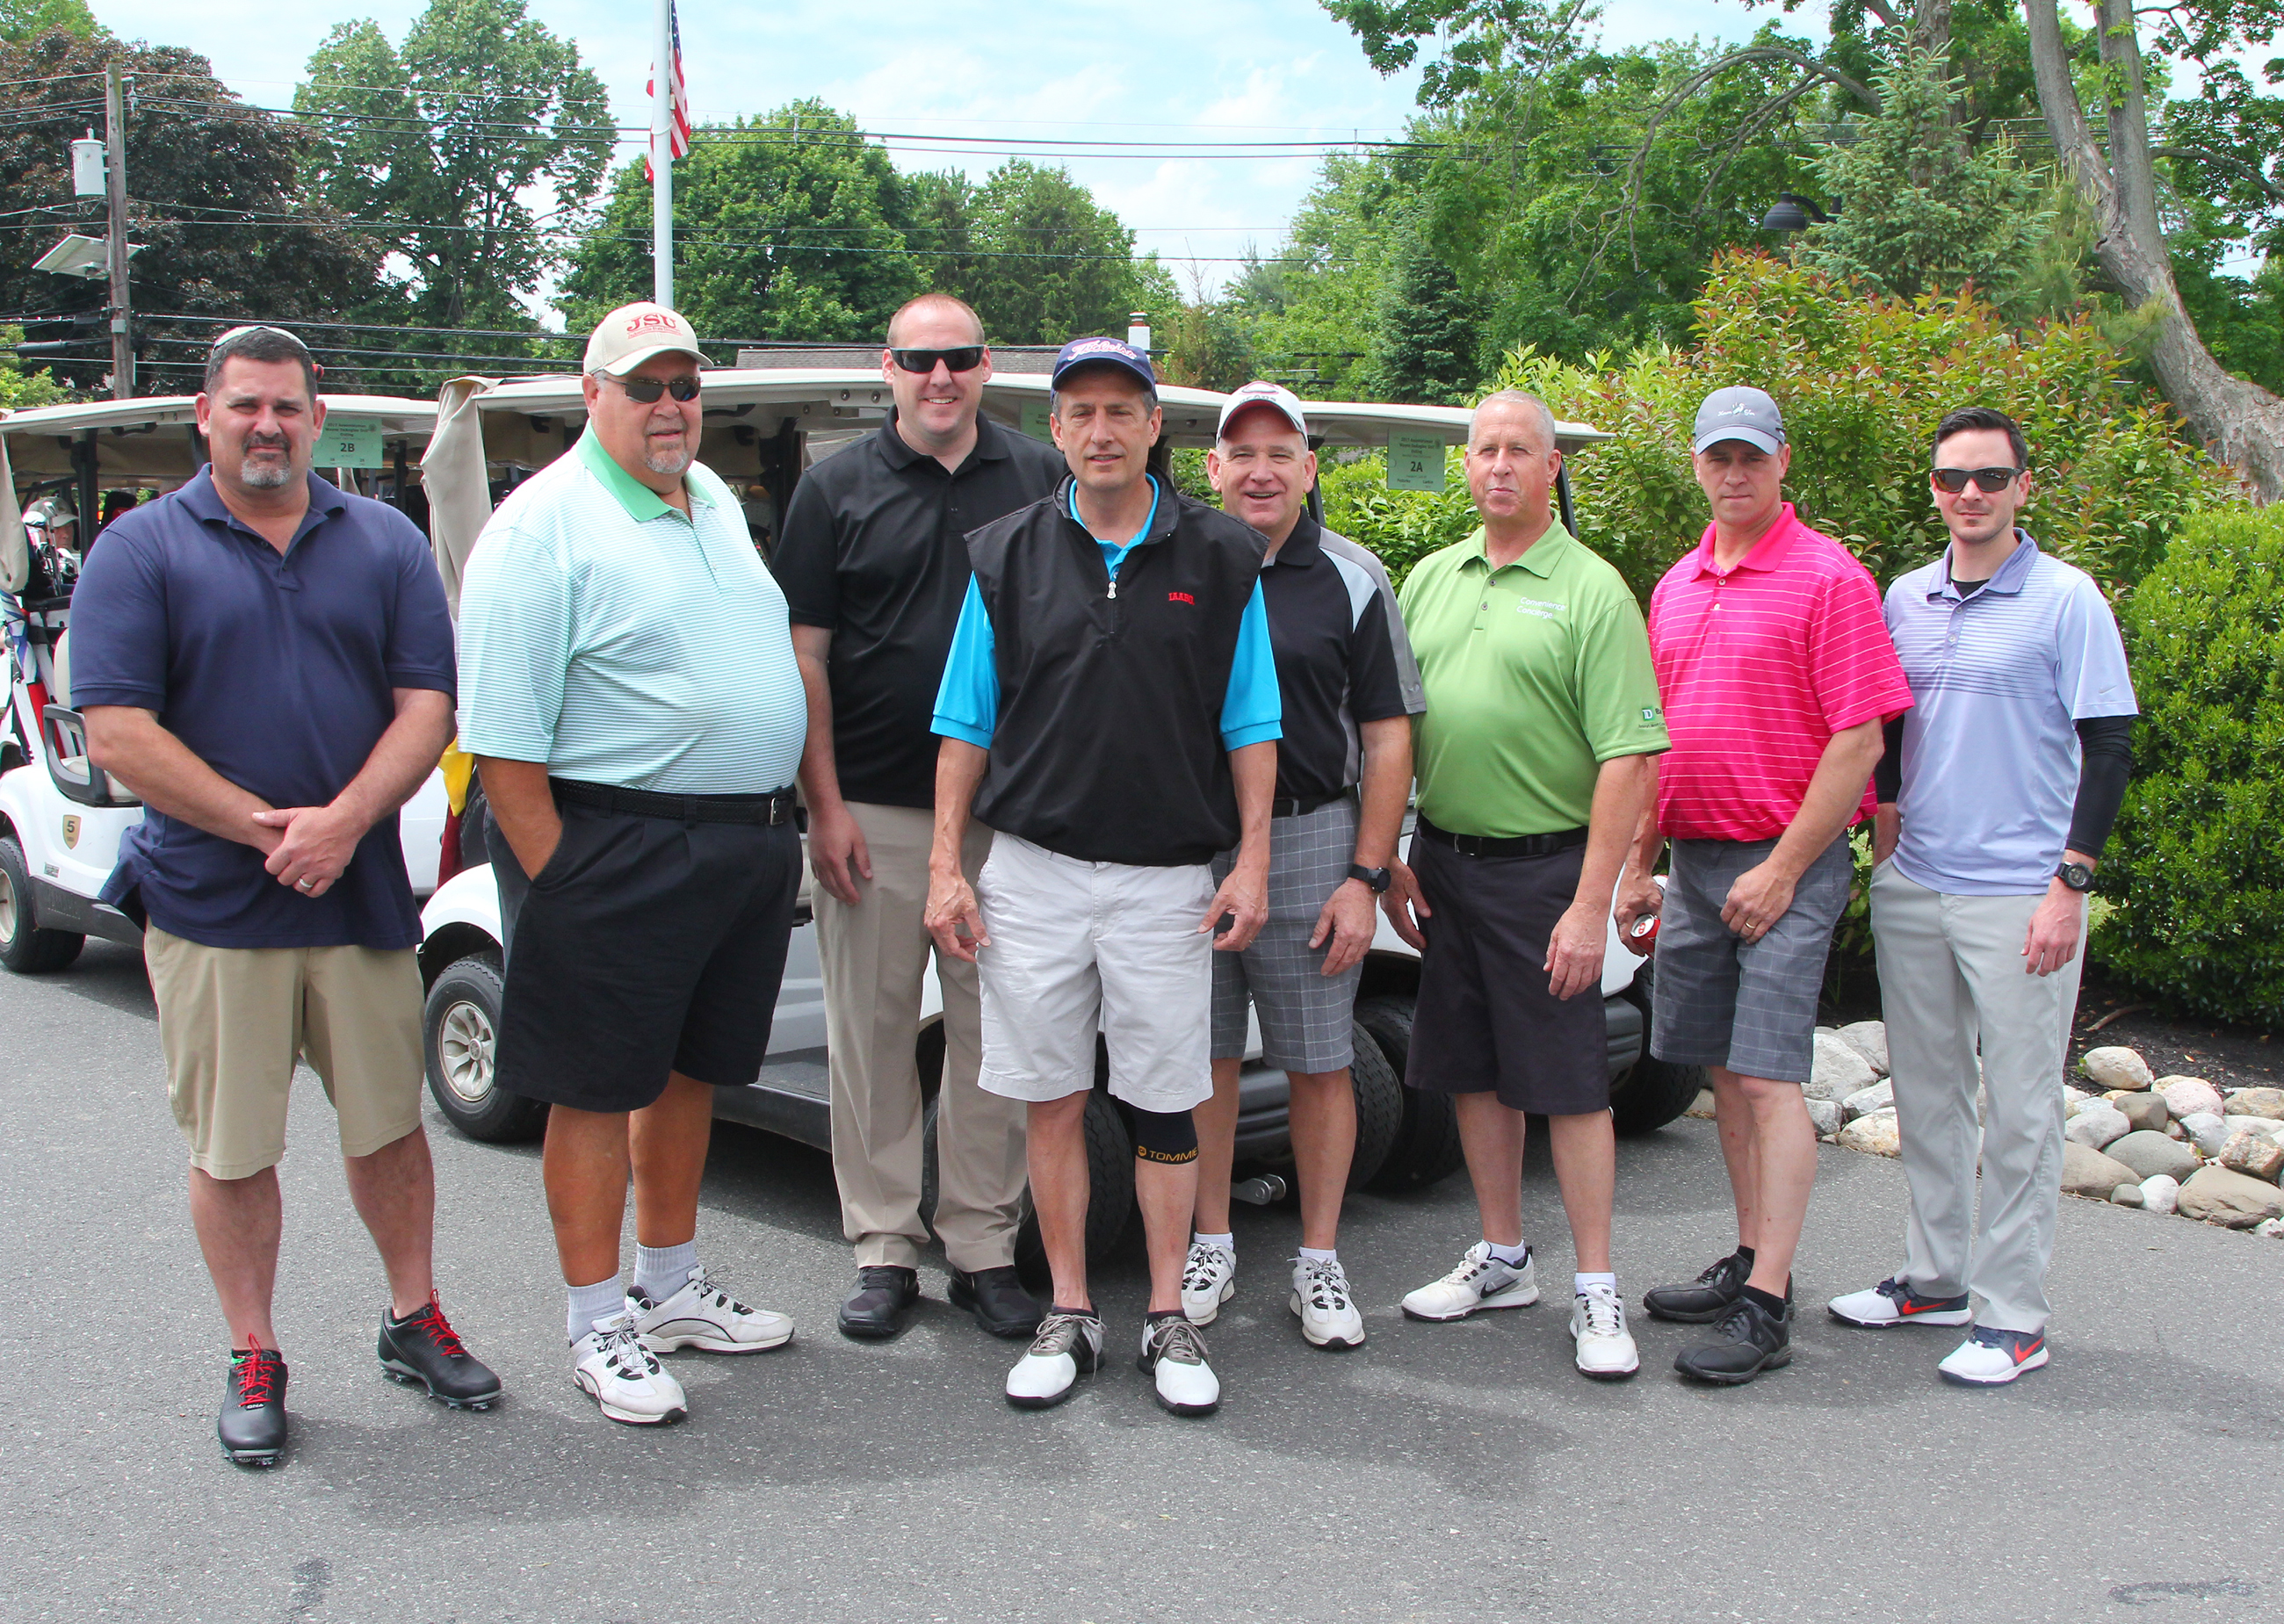 Wayne P. DeAngelo Golf Outing, May 24, 2017, Mountain View Golf Club. L-R, Insulators Local 89- Mike Perri, Ed Fedorko, CJ Gesemyer, Fred Dumont, Dave Cicchino, Jeff Pageau, Brian Tumler, and non union friend, Matt Murphy.